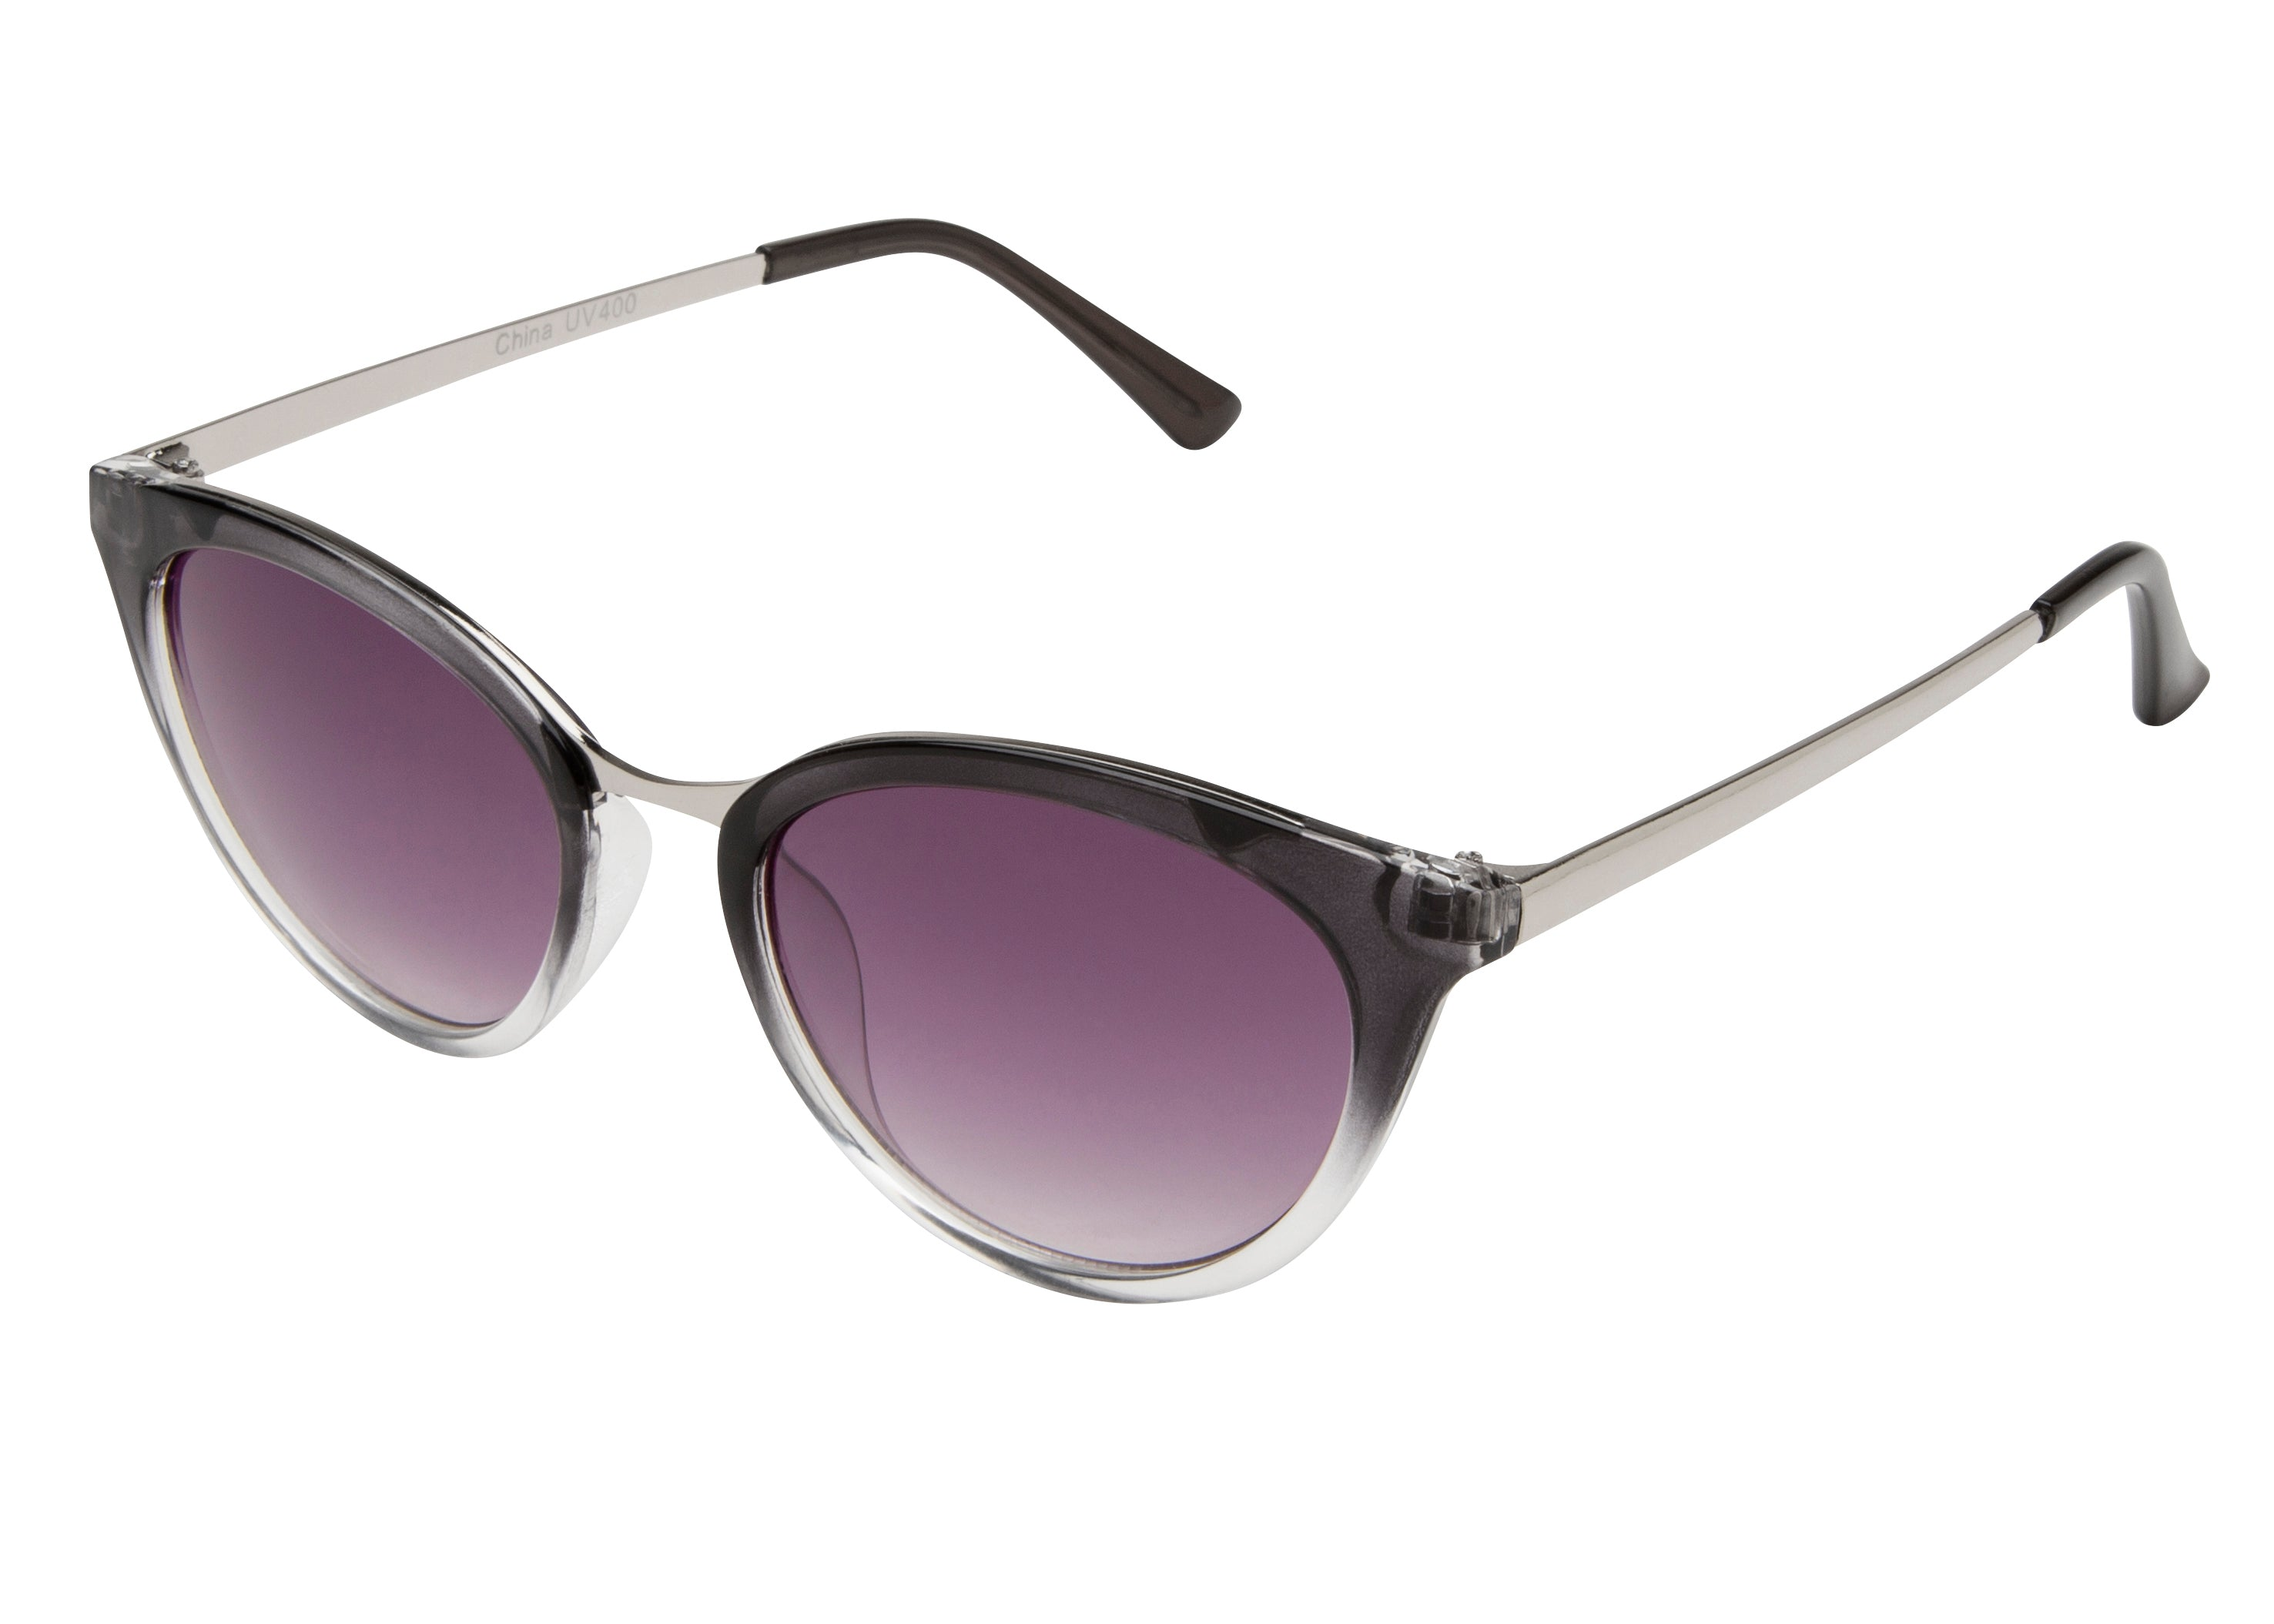 66140 - Vox Women's Fashion Sunglasses